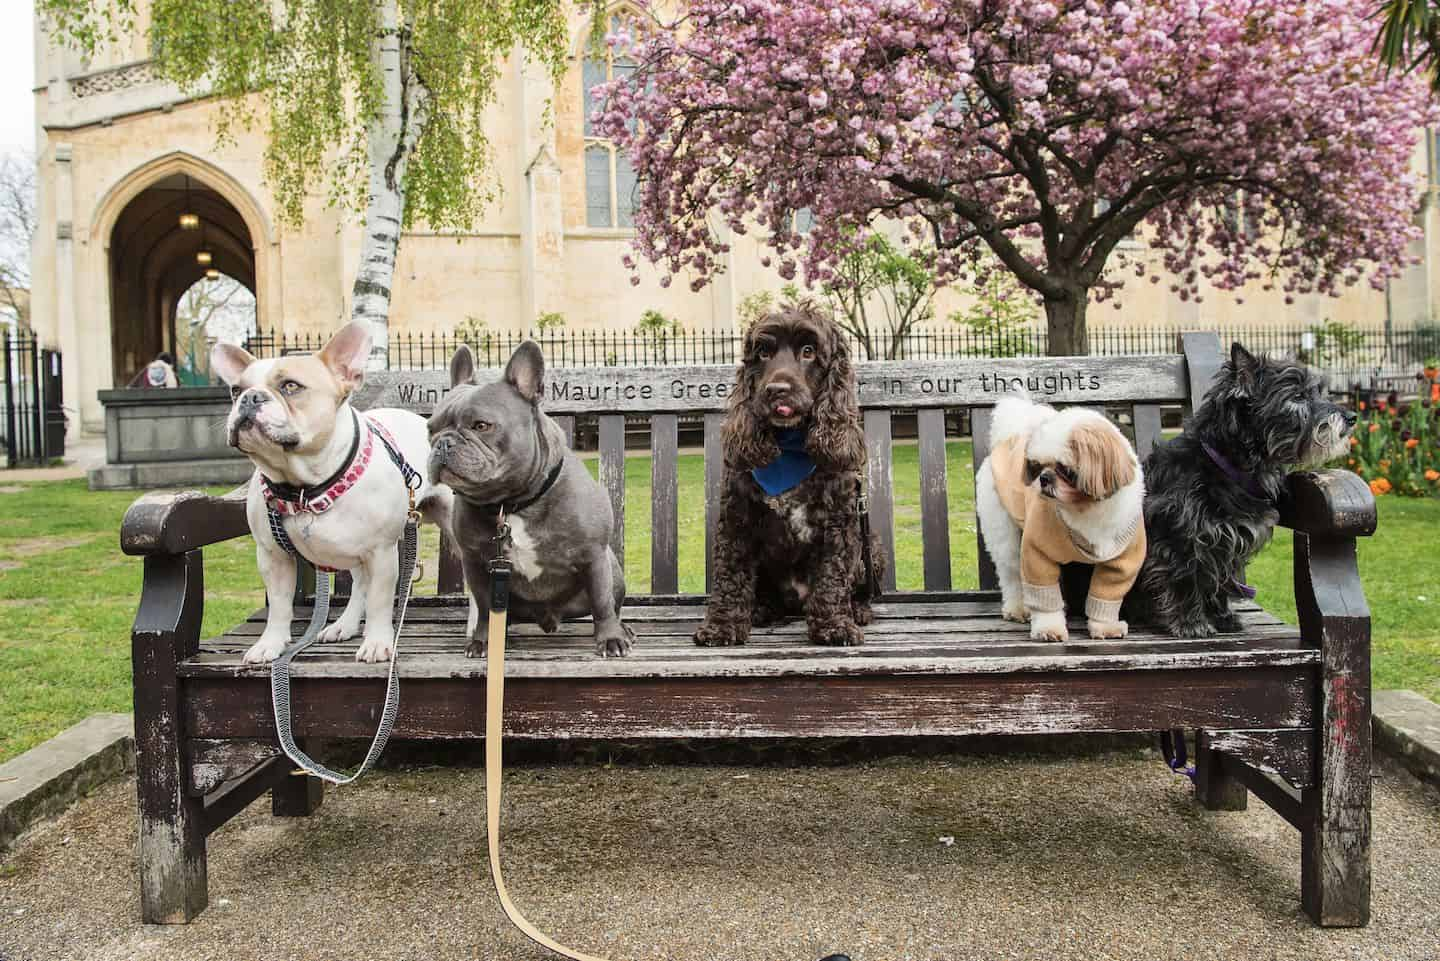 London Dog Events and Things to Do July 2019 - Walks and Meetups